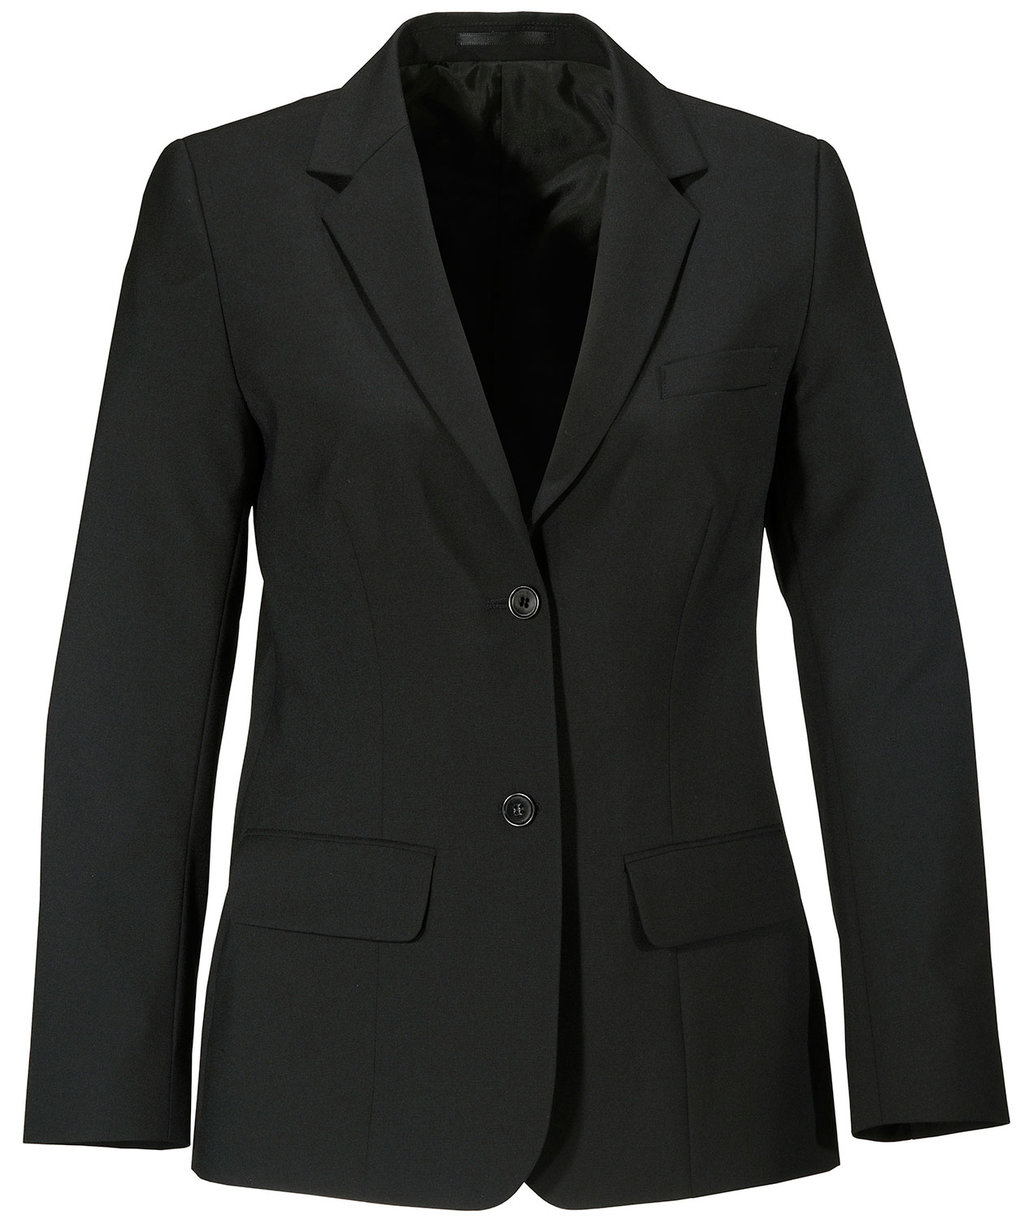 Hejco women's suitjacket, Black